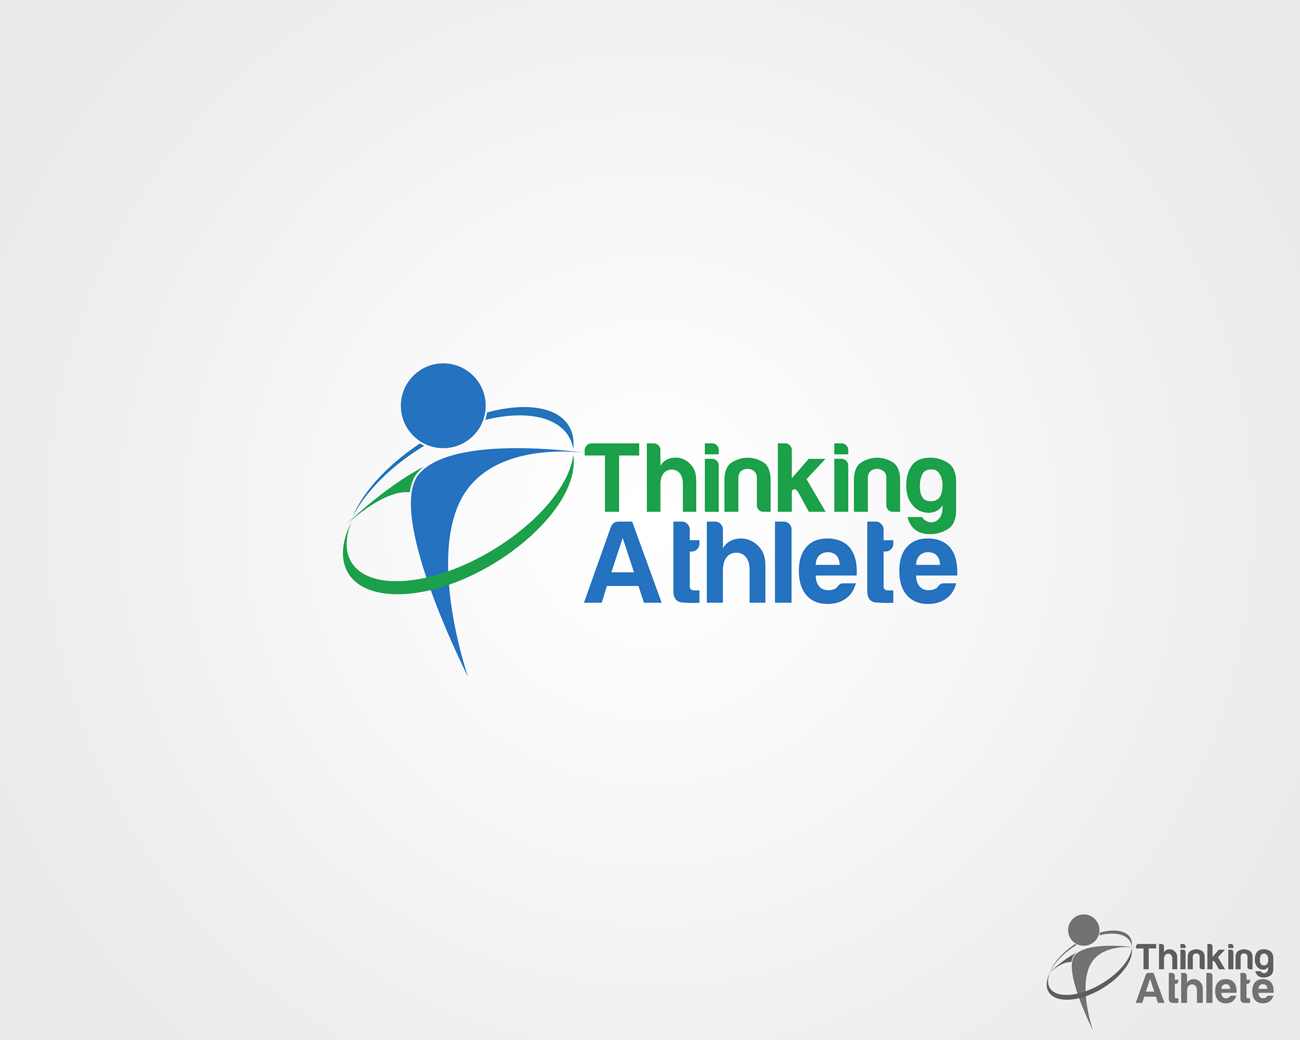 Logo Design by Qoaldjsk - Entry No. 5 in the Logo Design Contest Thinking Athlete Logo Design.